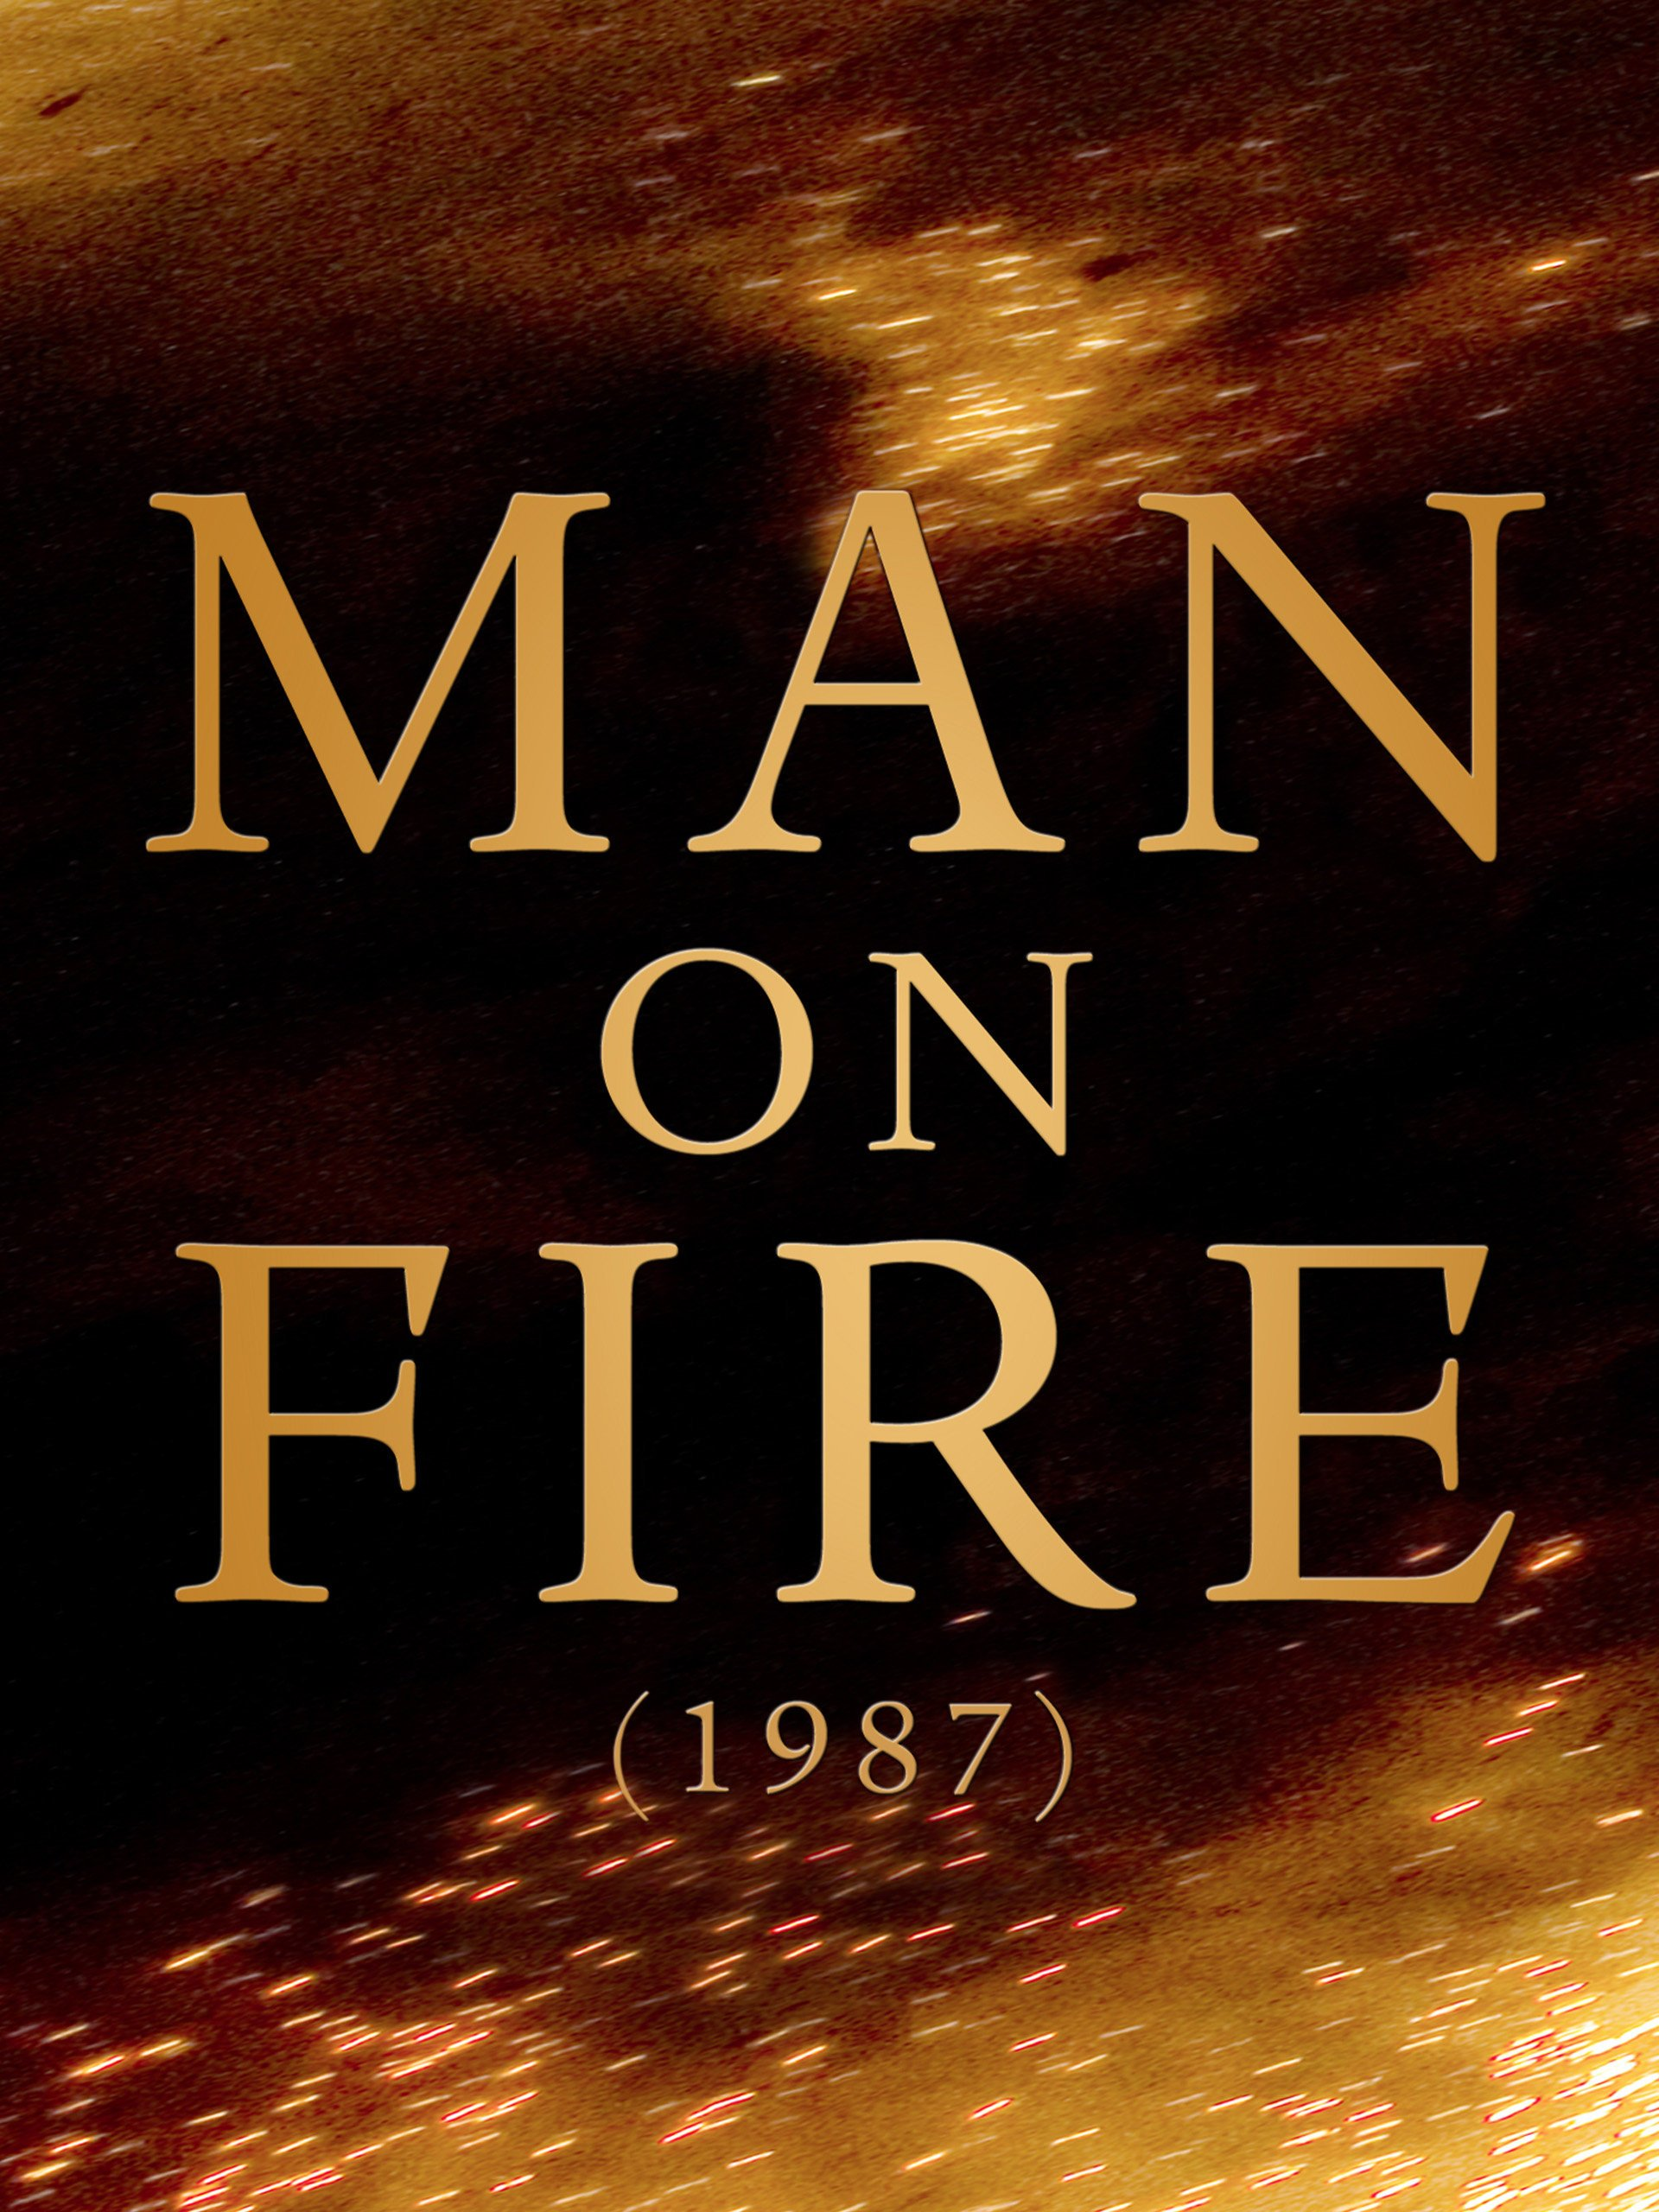 Man on fire full movie with english subtitles | Watch Man on Fire